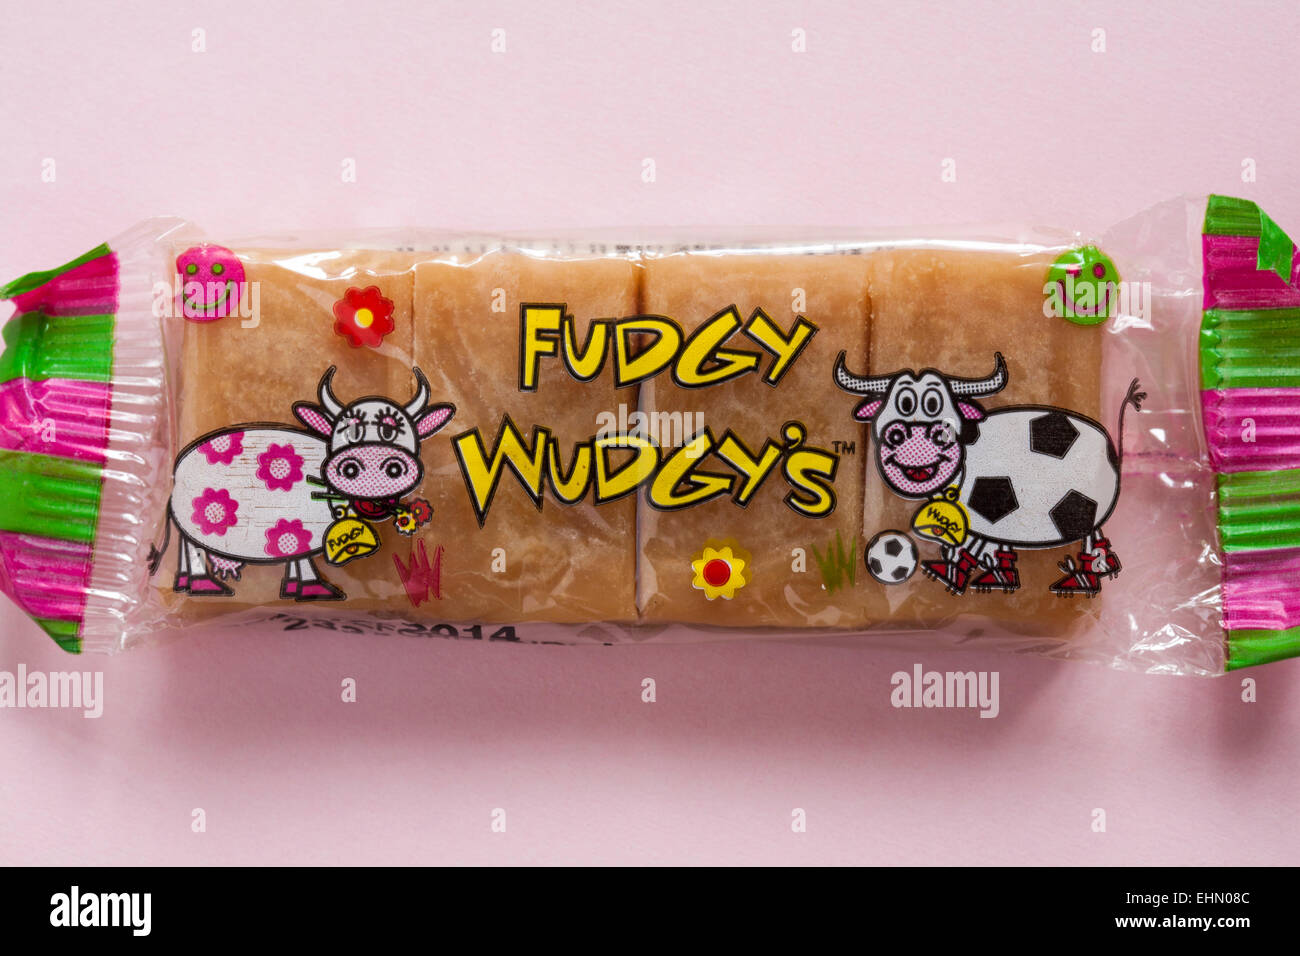 Fudgy Wudgy's fudge bar set on pink background Stock Photo